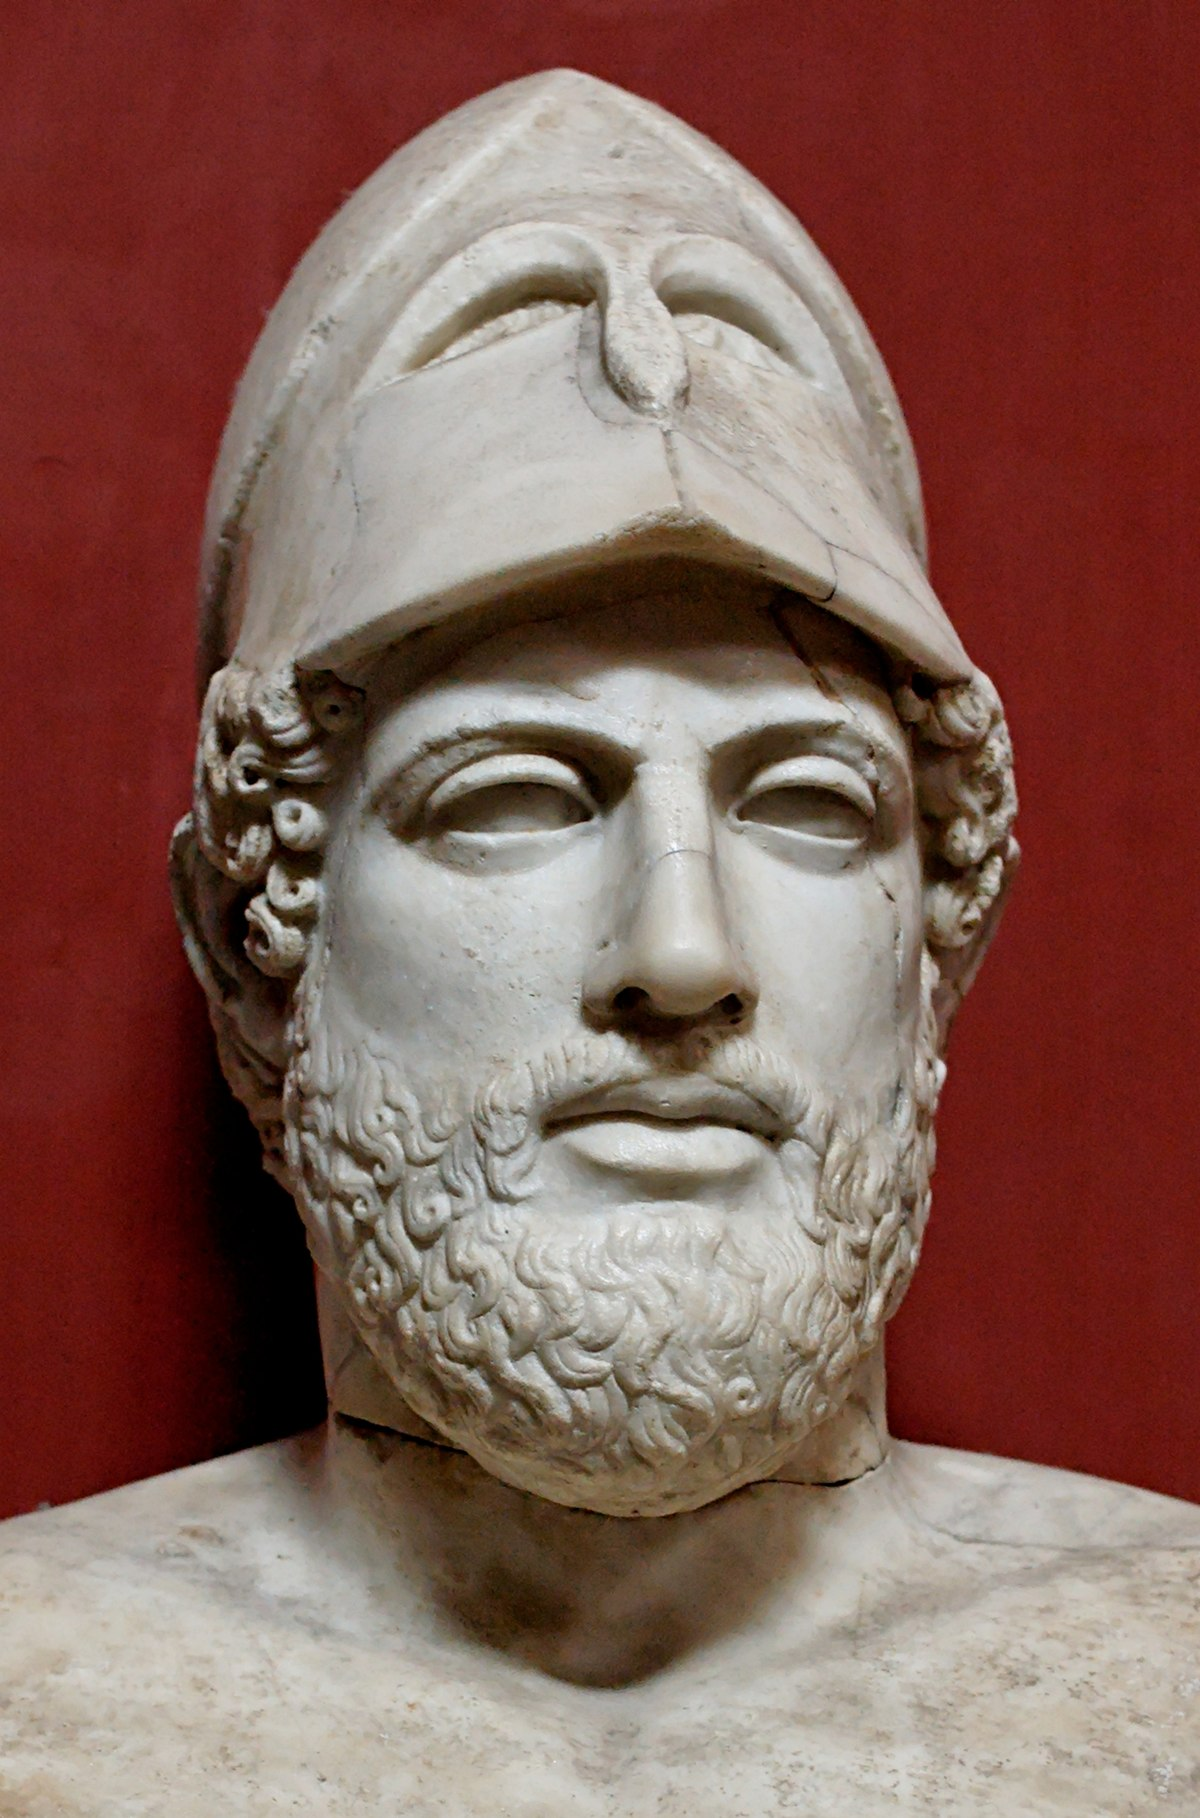 Pericles - Wikipedia